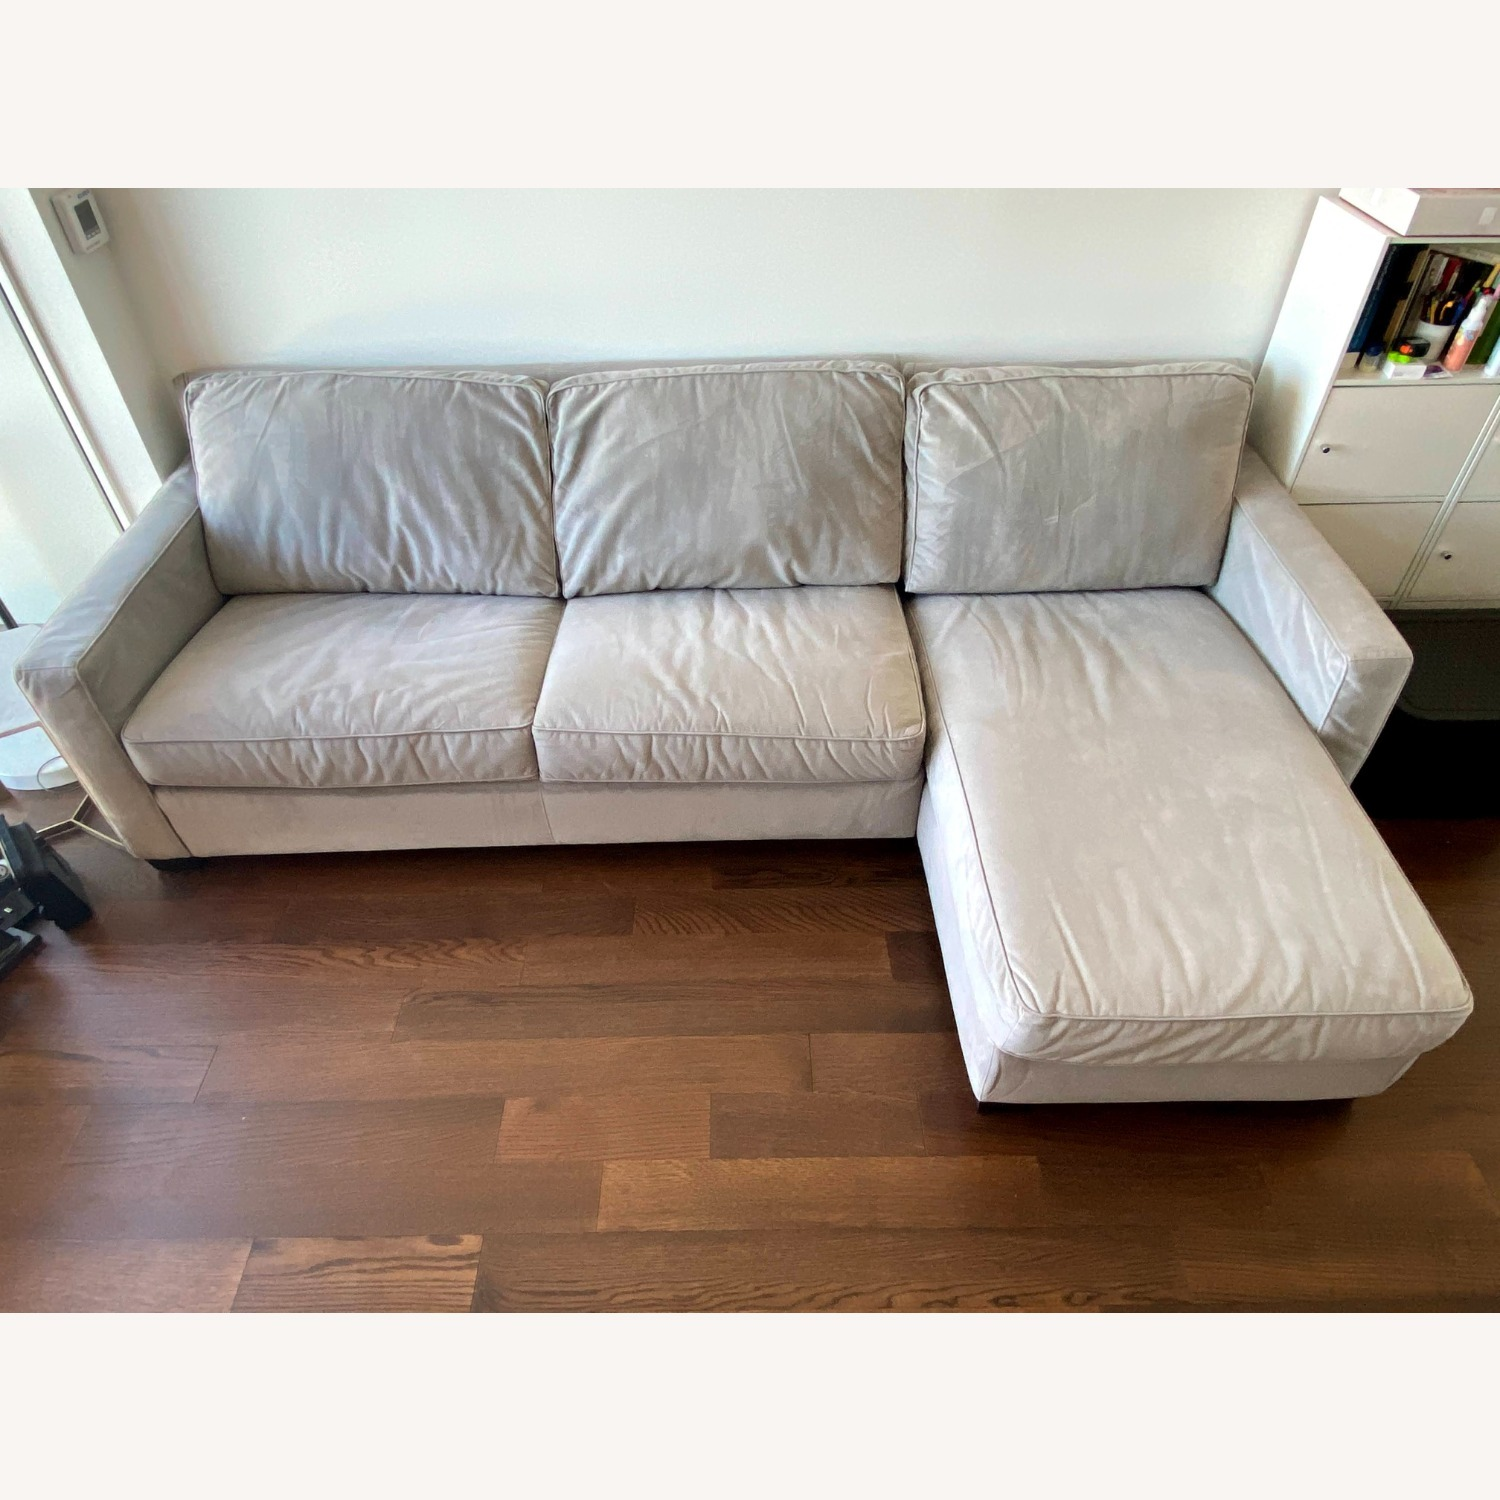 West Elm Henry 2-Piece Full Sleeper Sectional - image-3